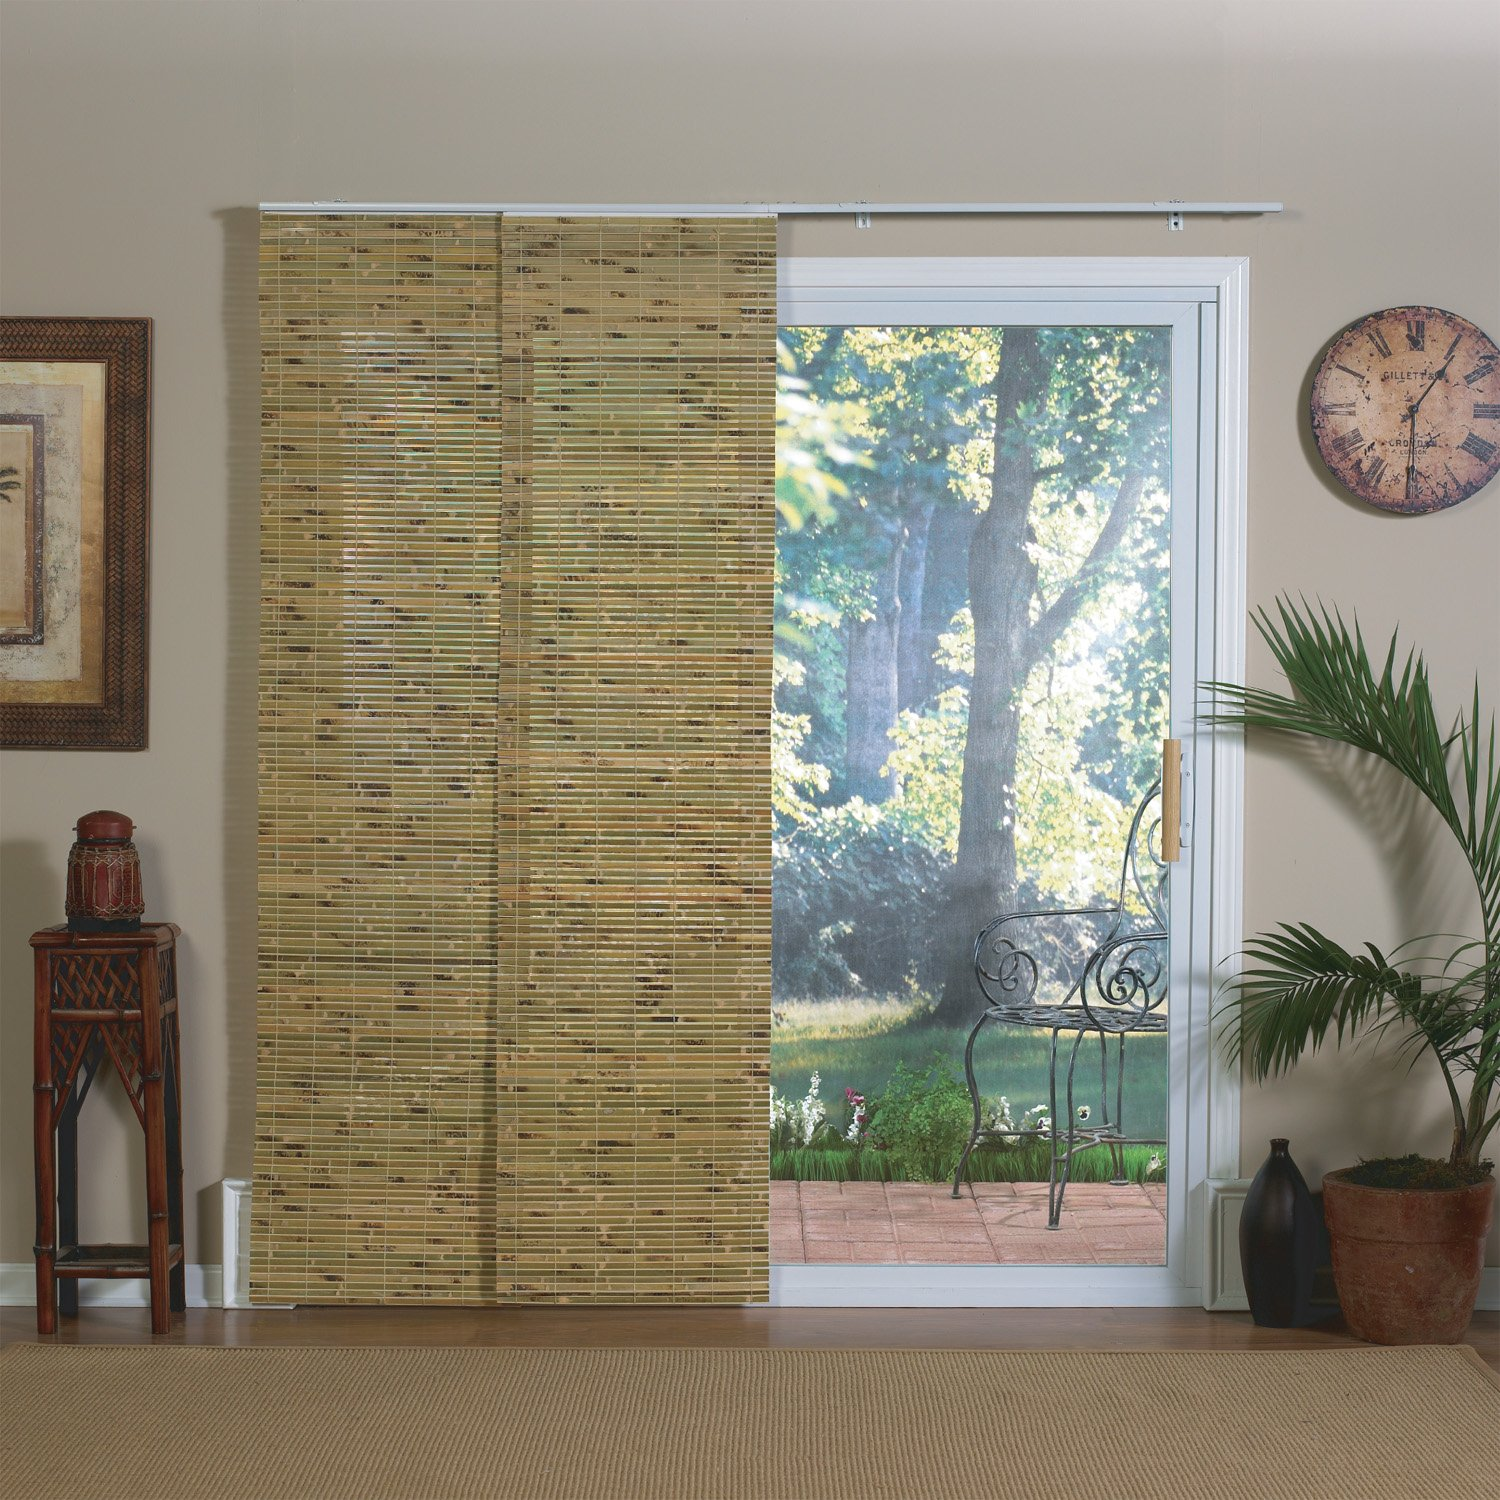 life result for shades find home cheap roller ok blinds to image window where overstock